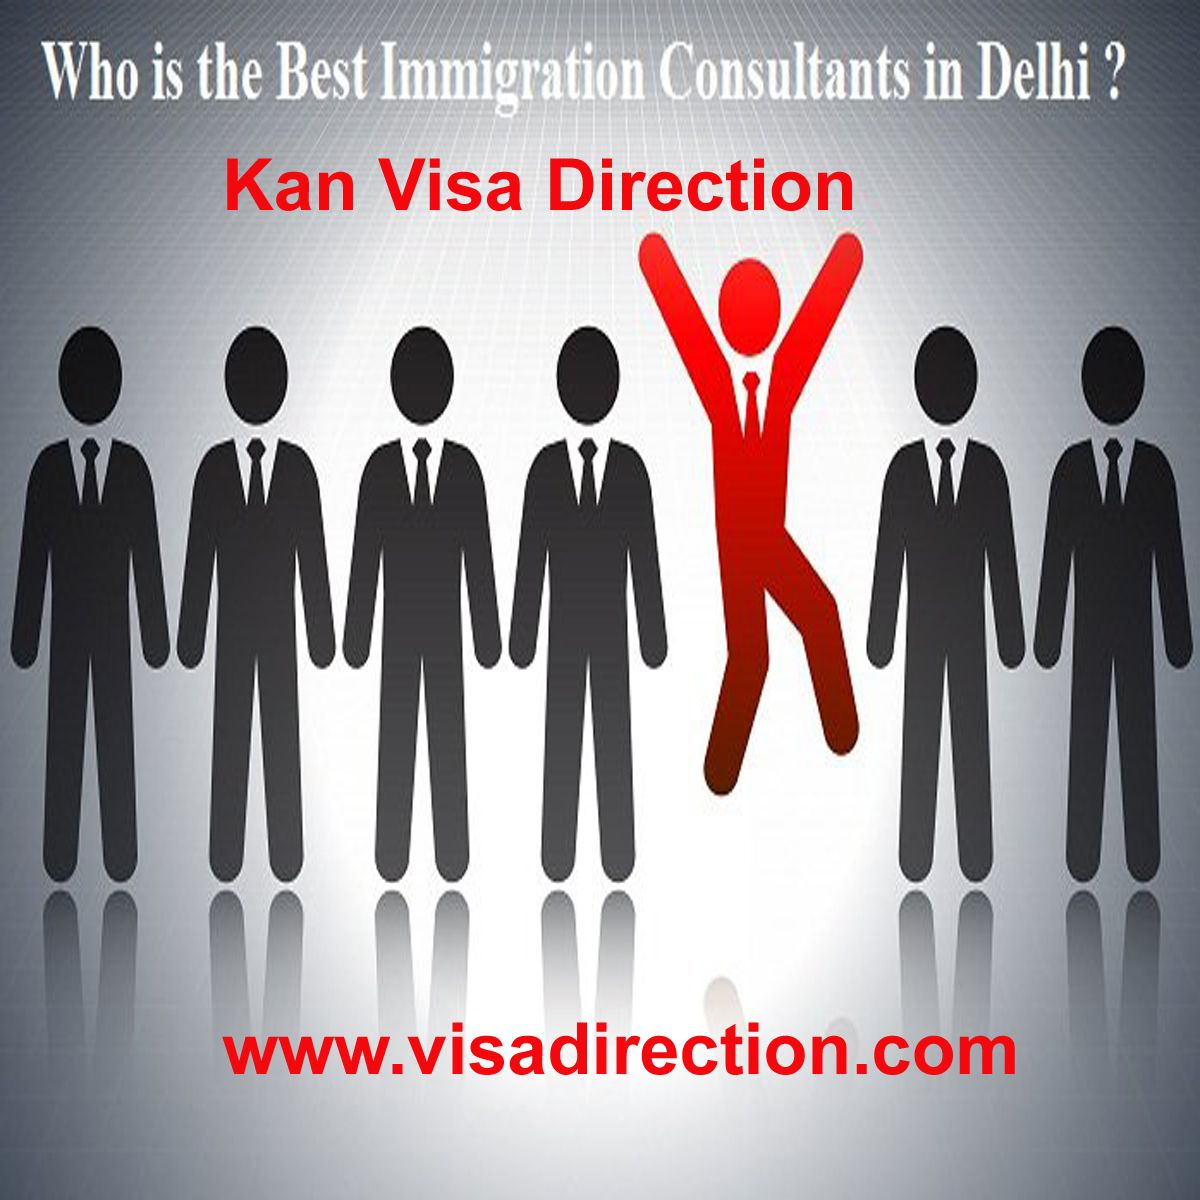 Kan Visa Direction Is One Of The Best Immigration Consultant In